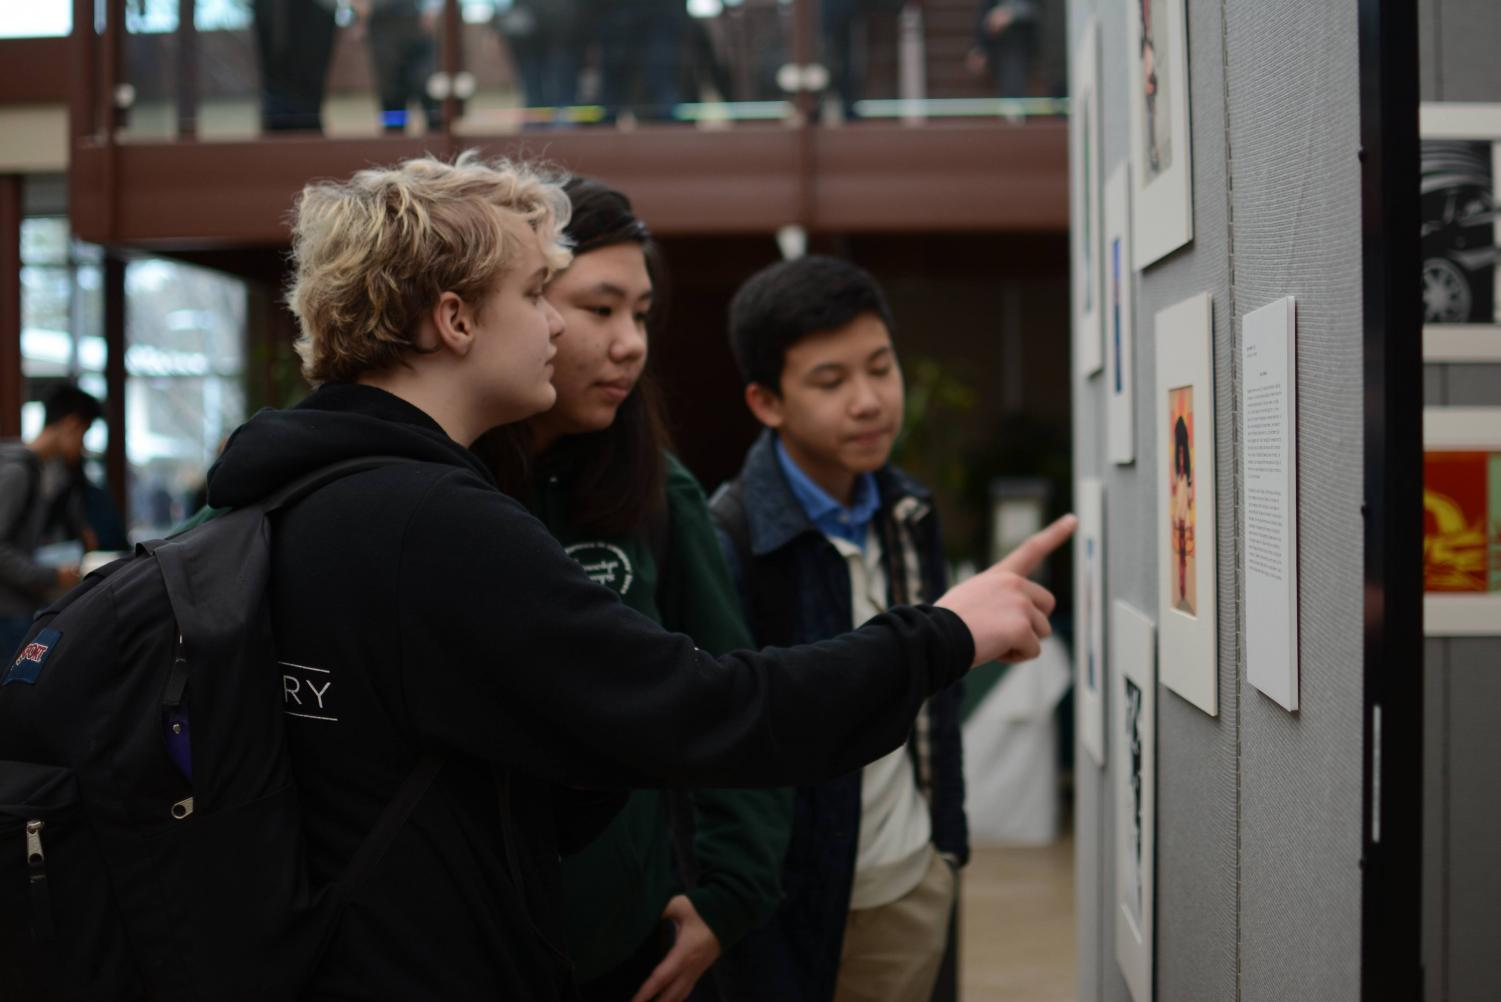 Students discuss art pieces displayed in Nichols Atrium. The works of this year's AP Studio Art students were featured in an exhibit up earlier this year.